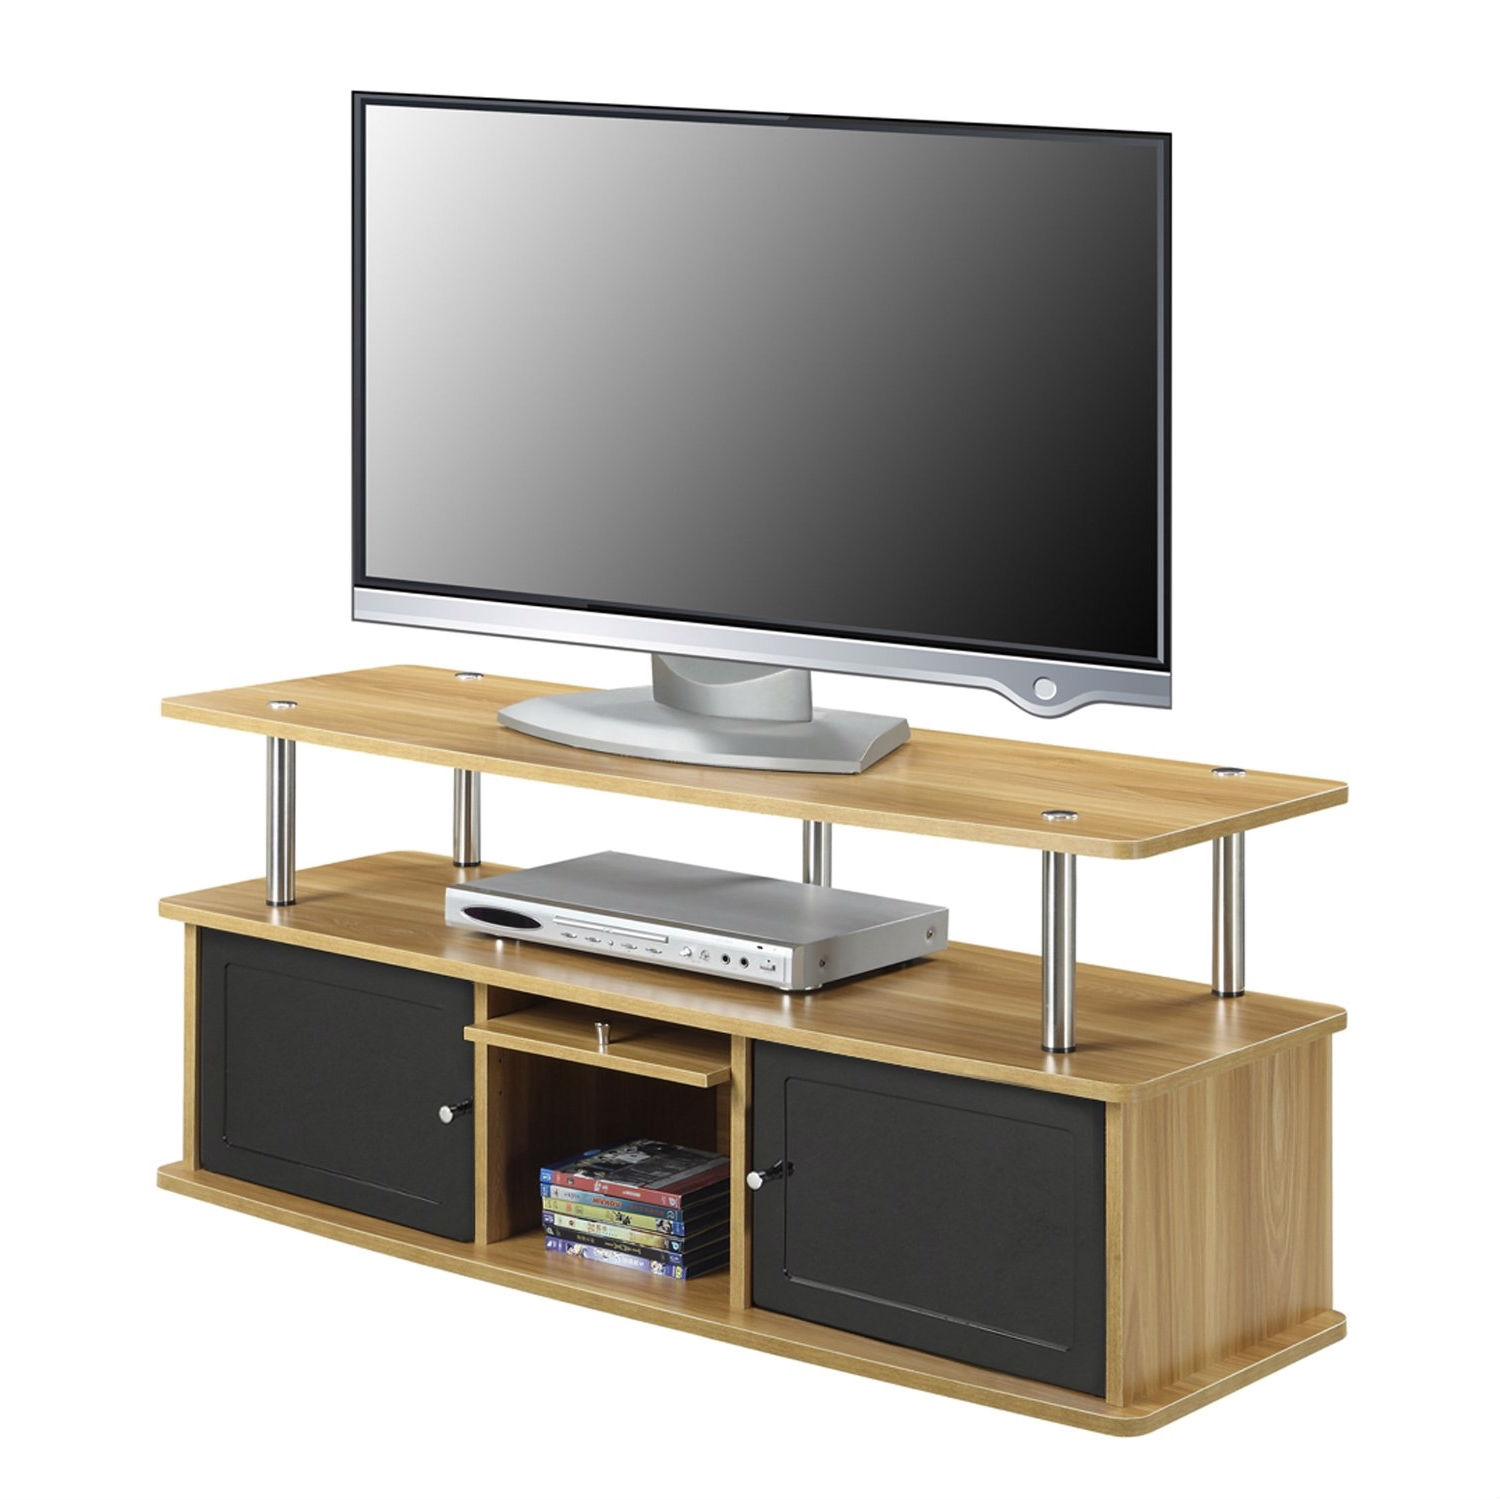 modern inch tv stand in light oak  black wood finish  - modern inch tv stand in light oak  black wood finish